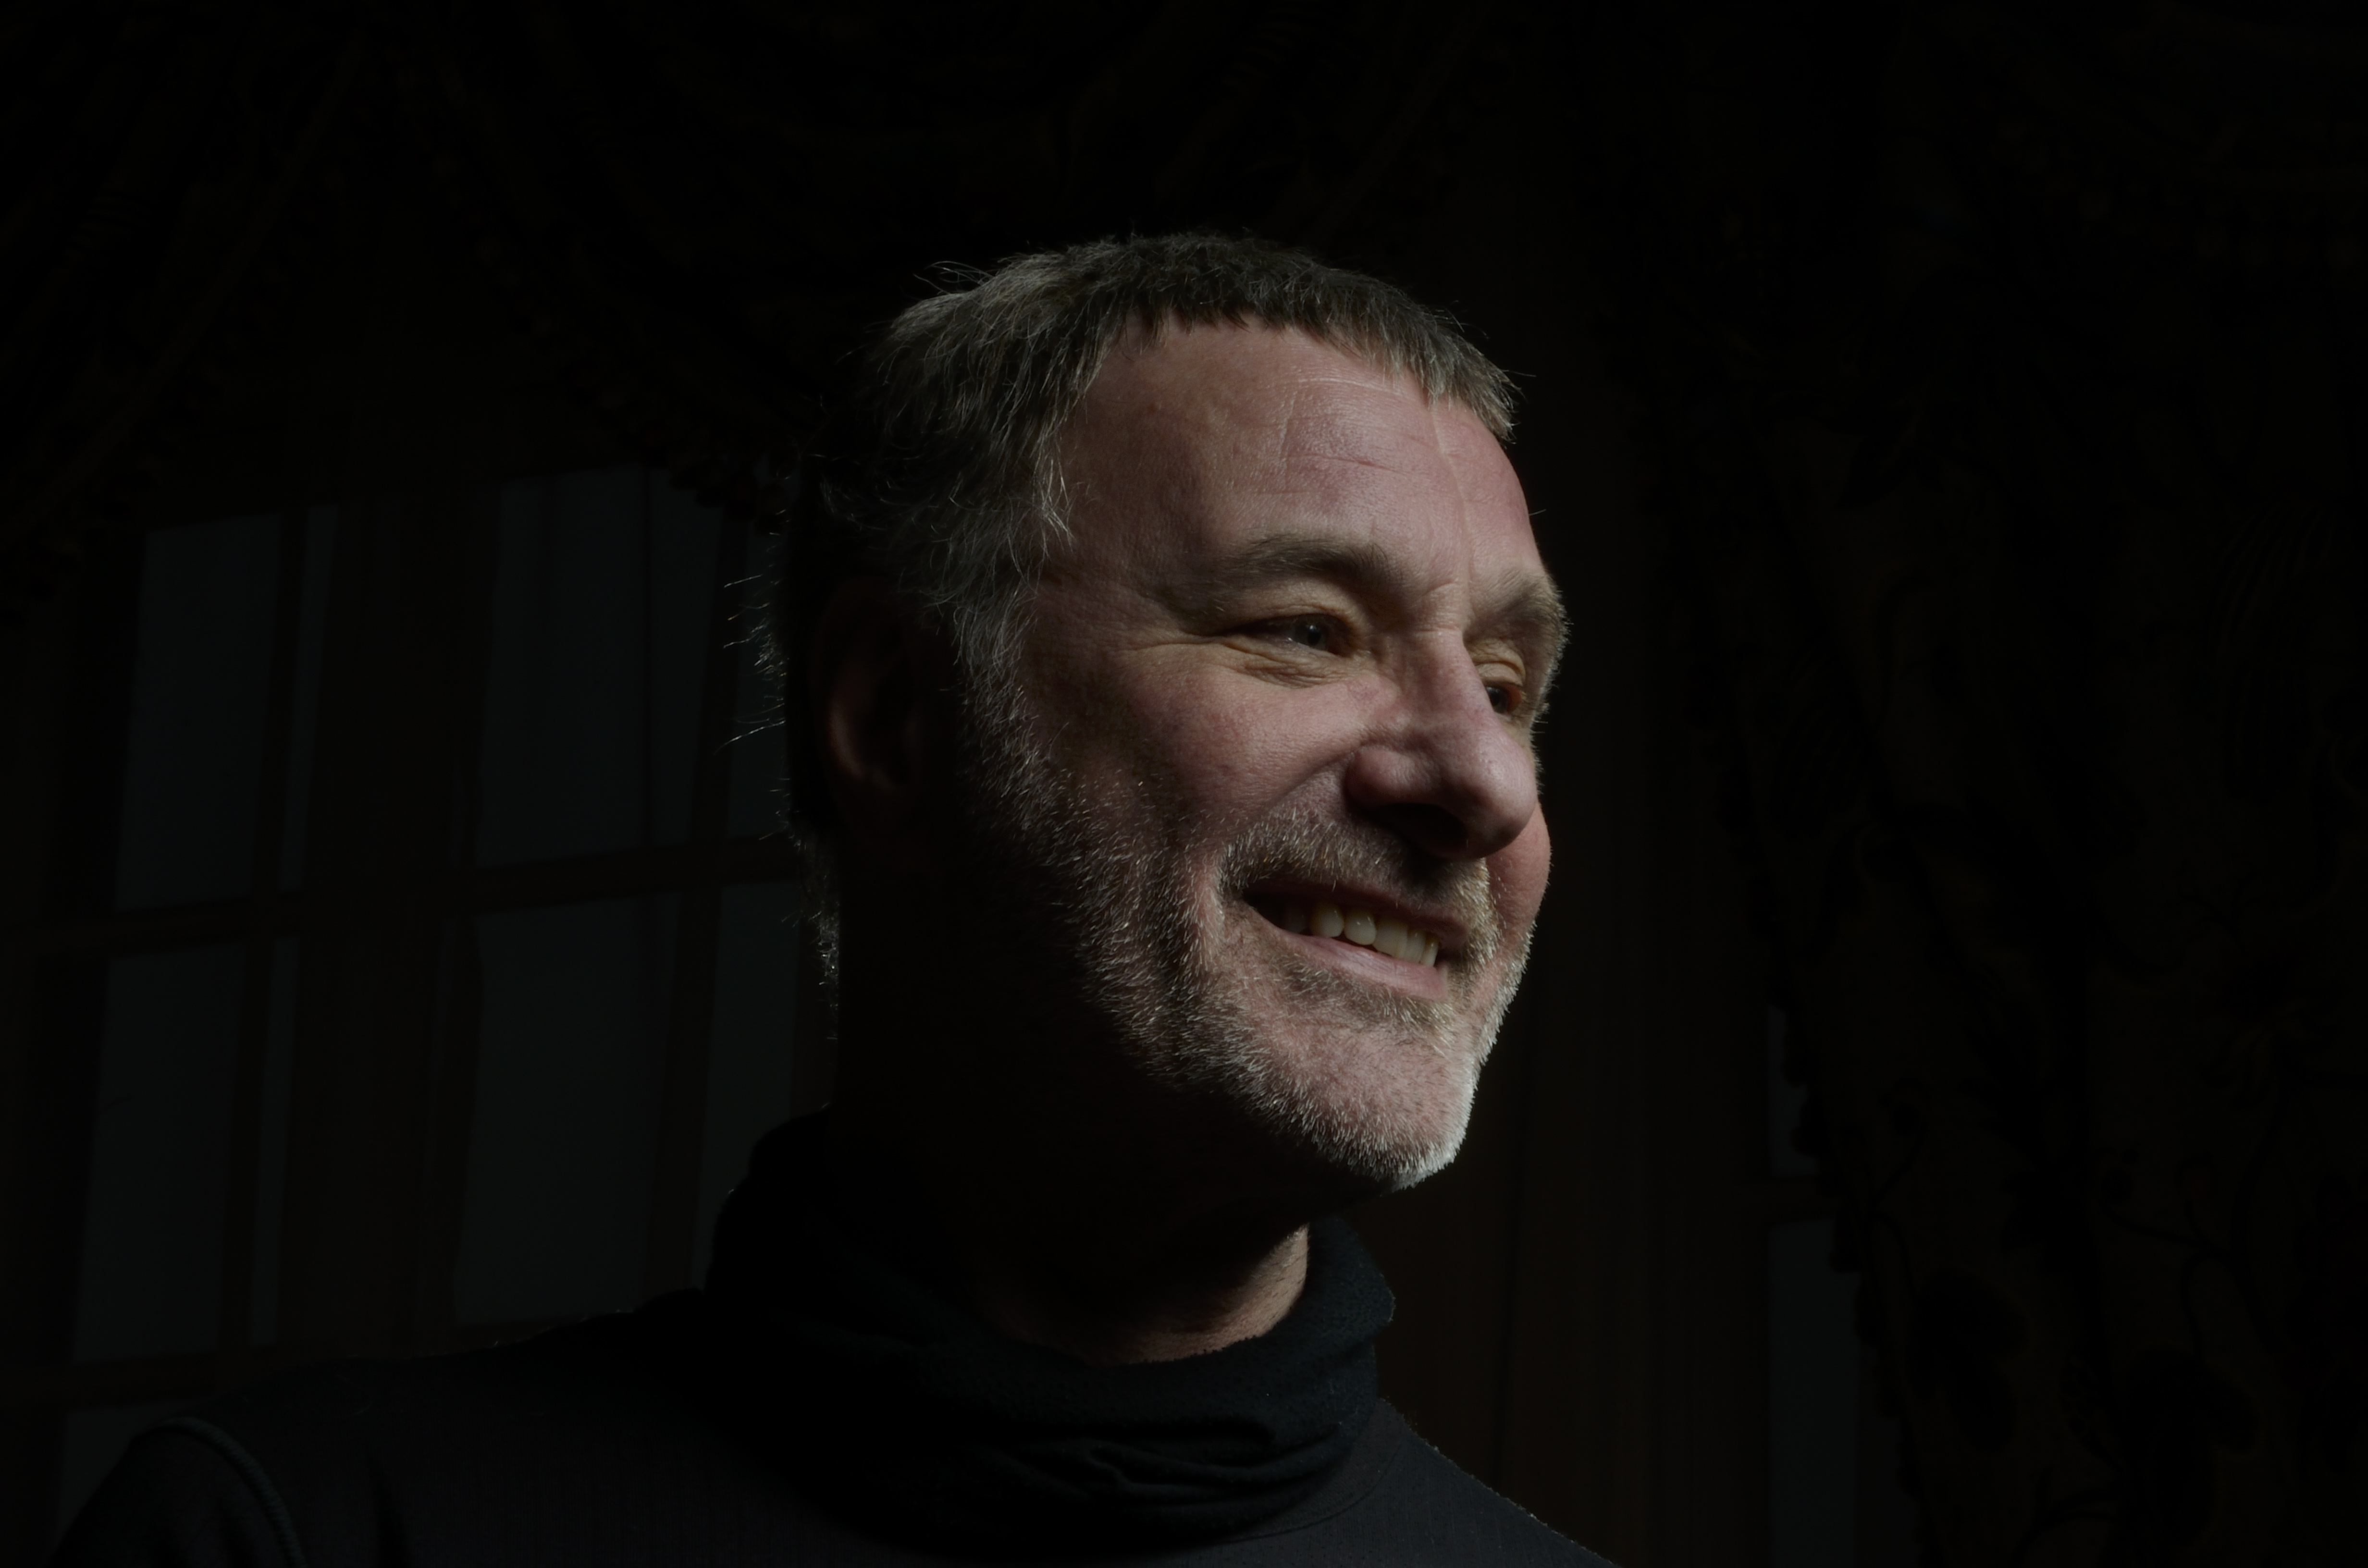 Photo of Steve Harley, man with grey beard